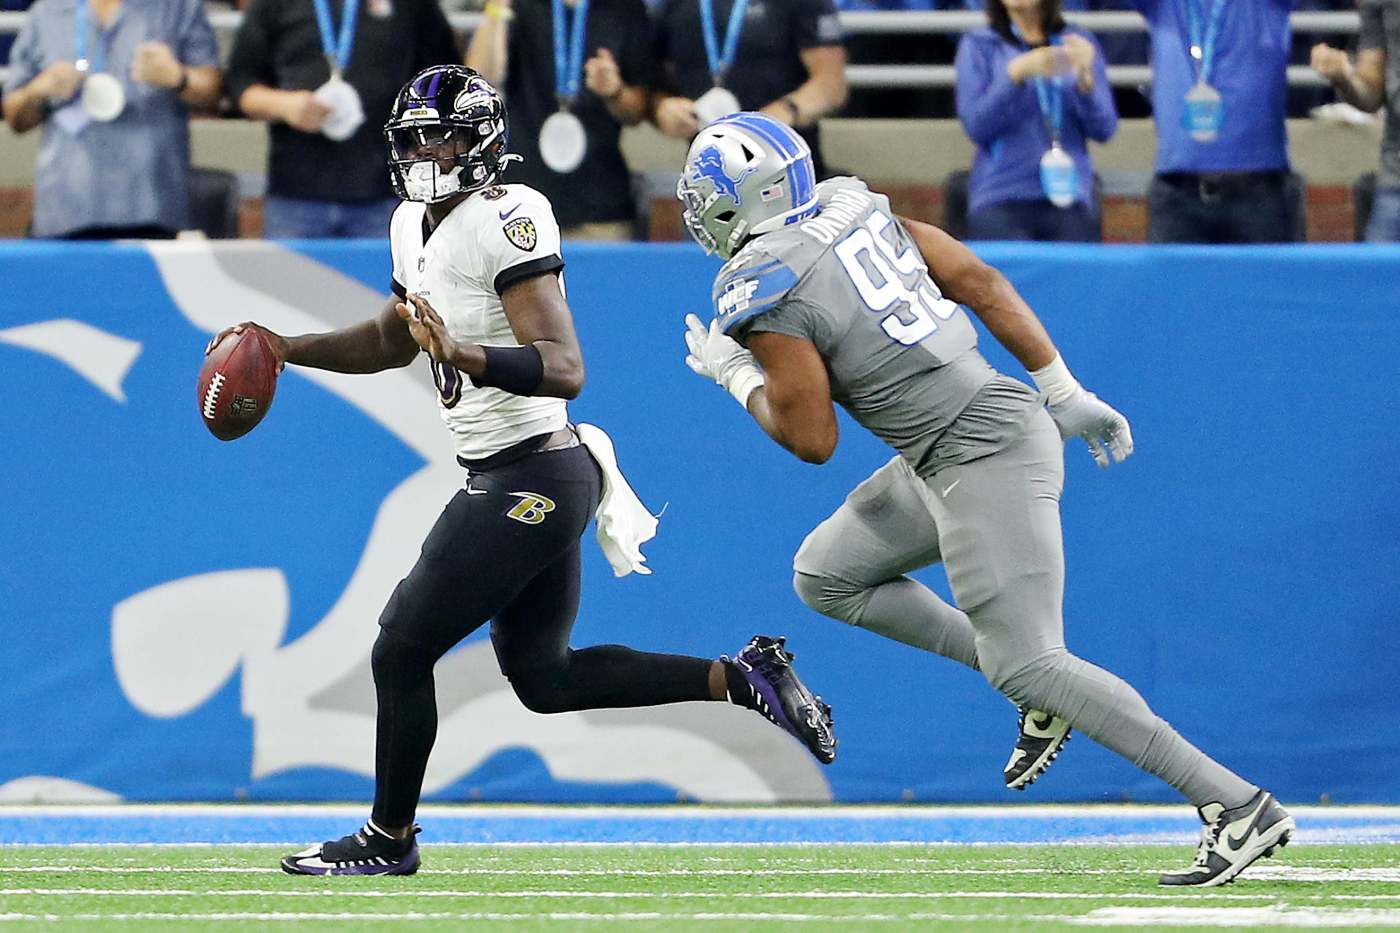 Inside the locker room: Lamar Jackson credits Lions timeout for boost ahead  of crucial fourth-down play - mlive.com